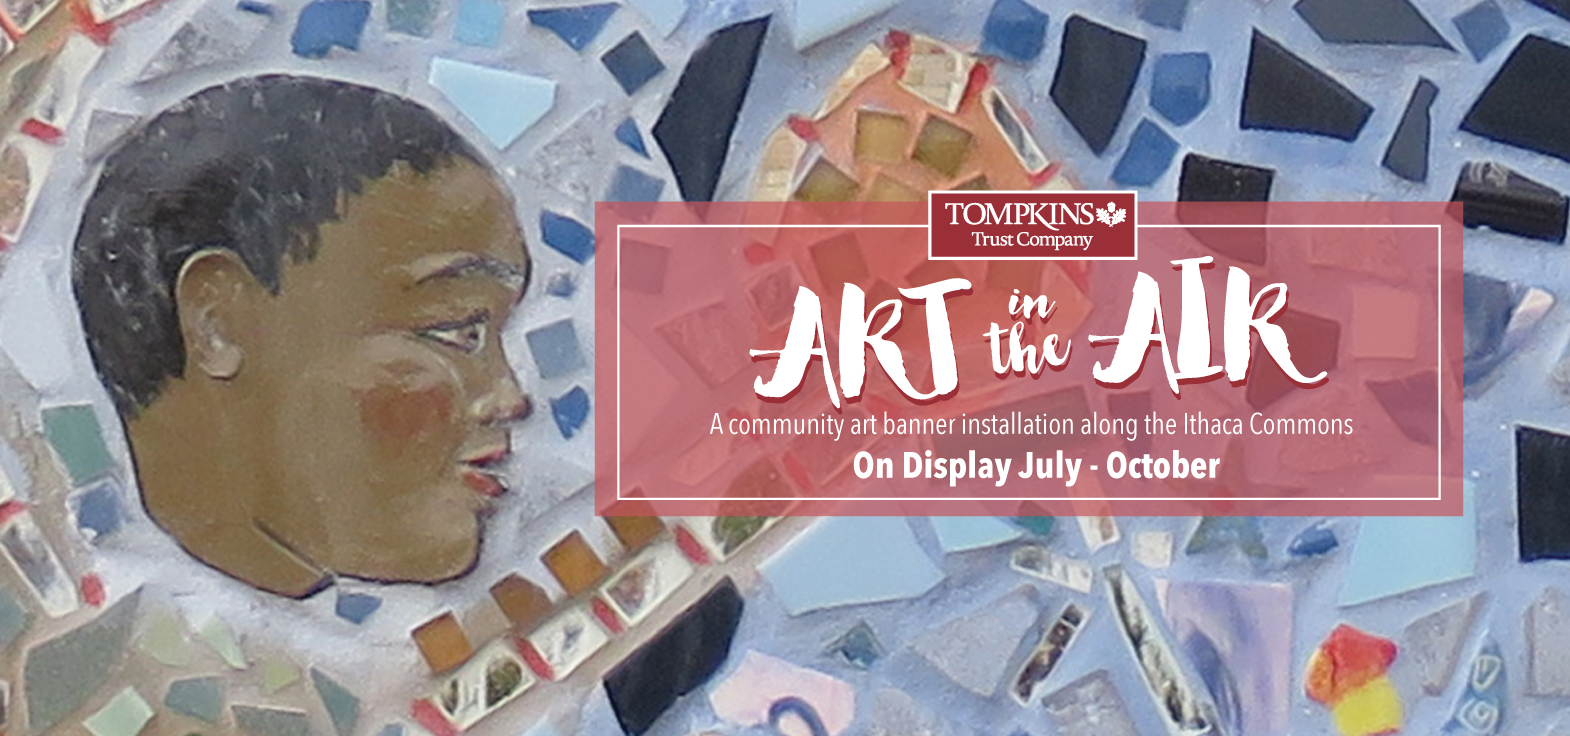 Art in the Air Graphic Image